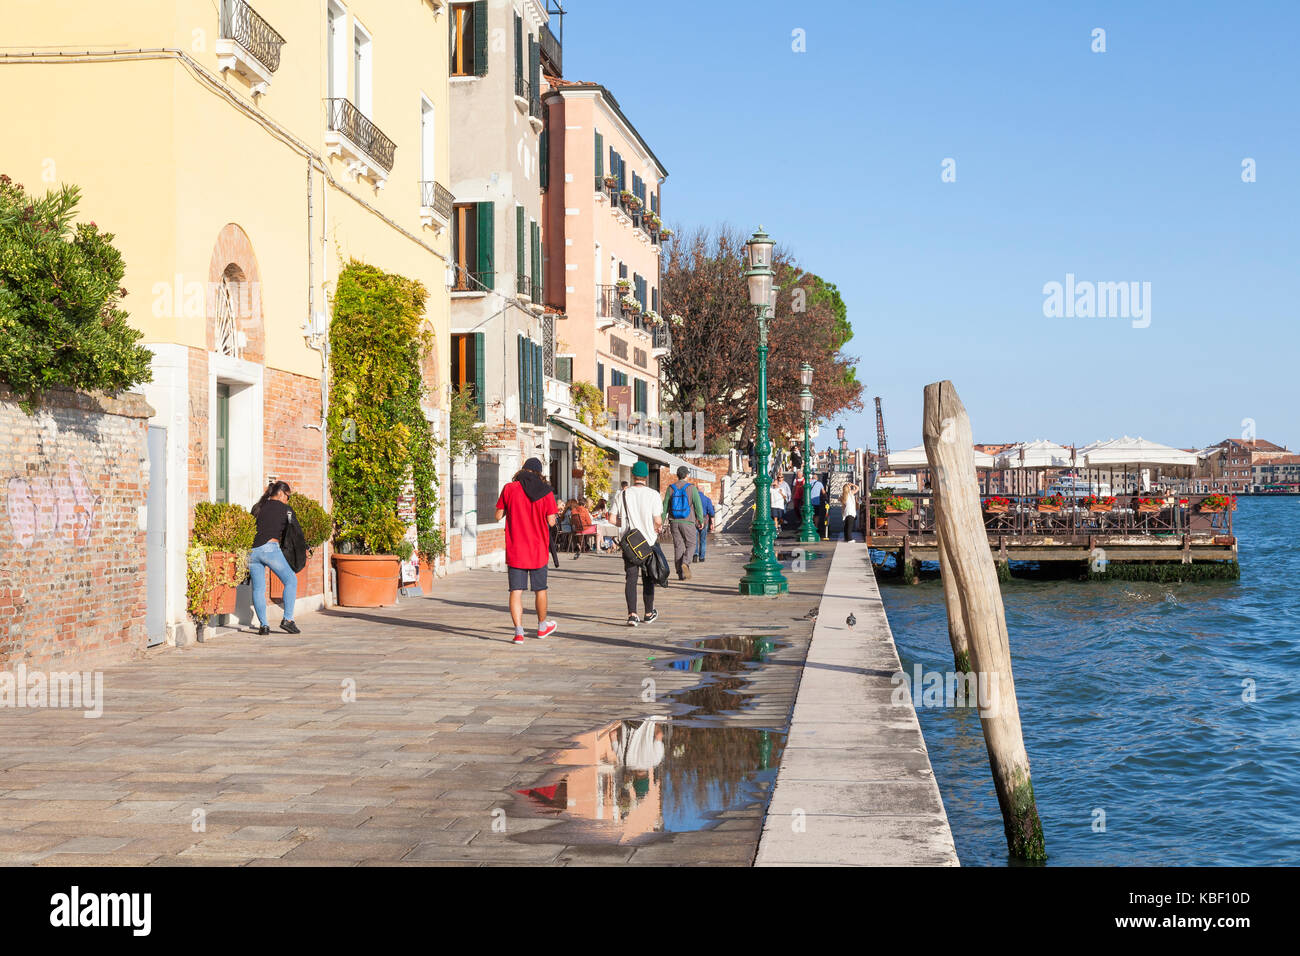 Zattere, Dorsoduro, Venice, Veneto, Italy in late evening light  with tourists walking and eating at an open air - Stock Image